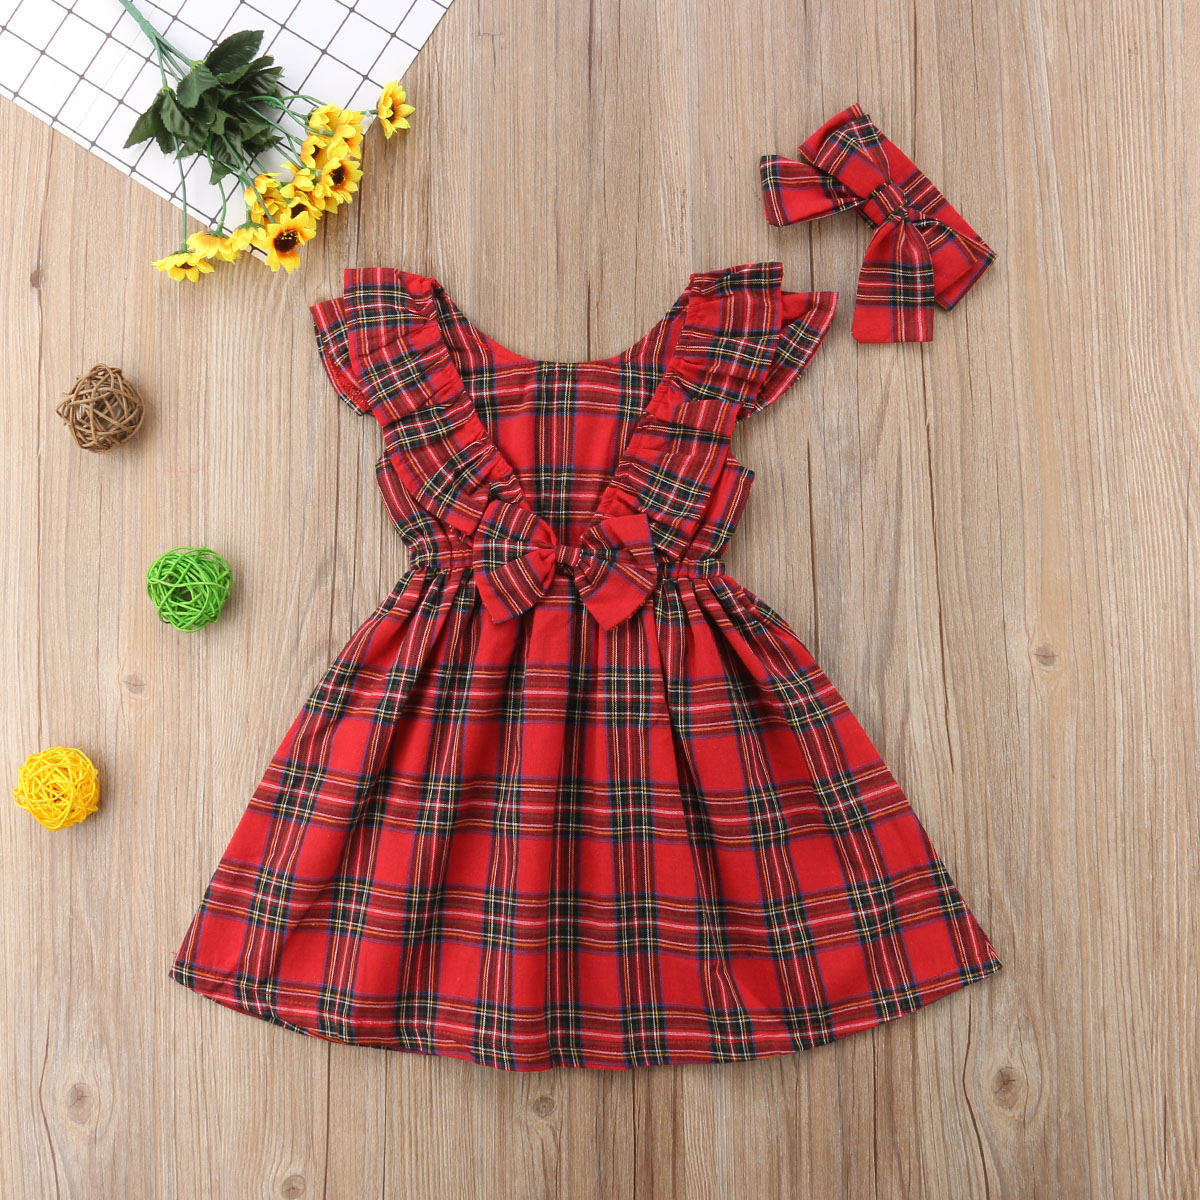 acfed1f25af0f Xmas Cute Pretty Toddler Baby Girls Party Dress 1-6Y Long Sleeve Ruffles  Plaid Knee-Length A-Line Red Dress Autumn Clothes